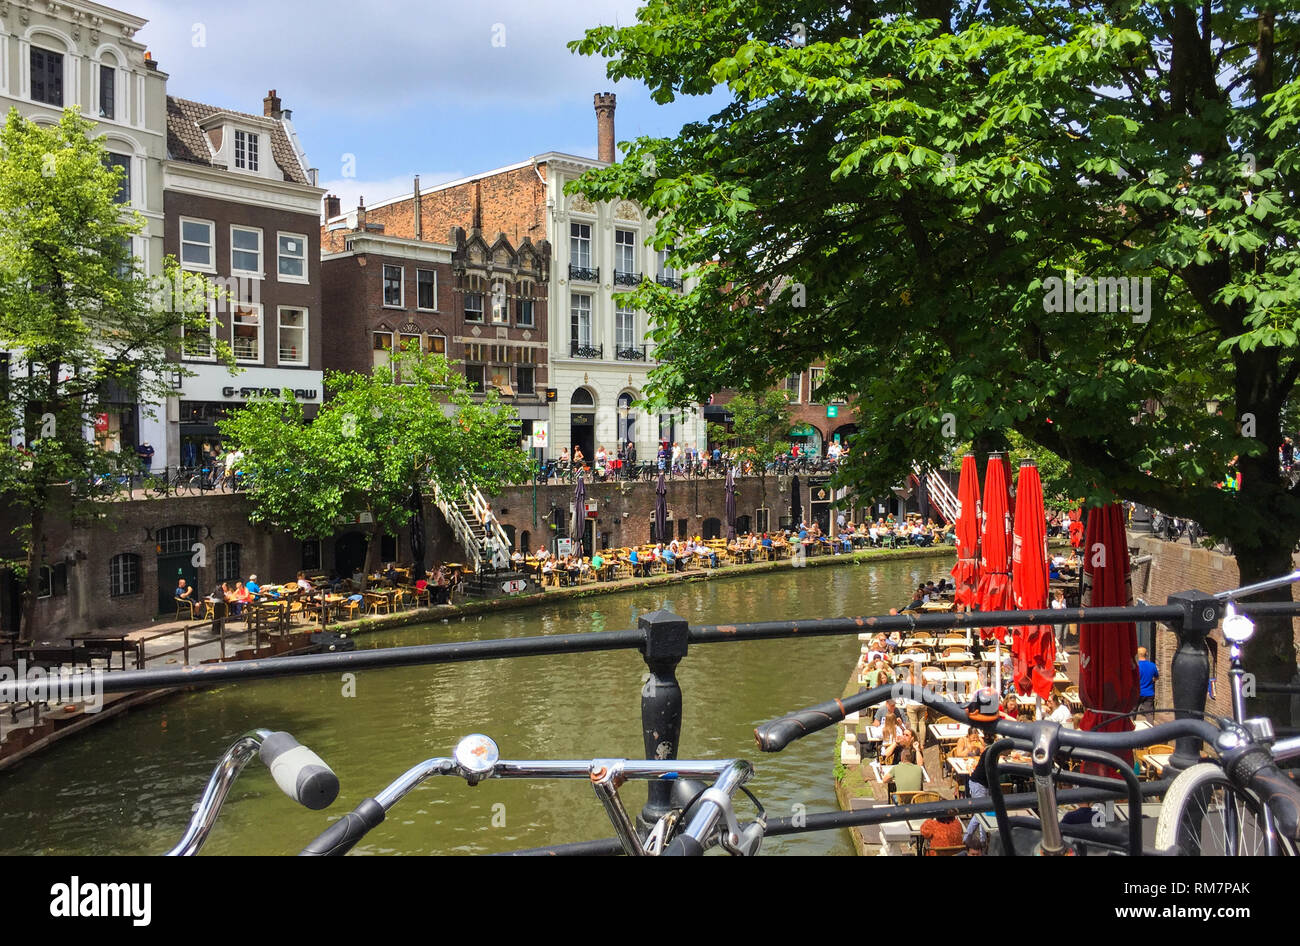 Amazing view on a lot of outdoor cafes alongside the Oudegracht (Old Canal) in the center of Utrecht, Netherlands Stock Photo